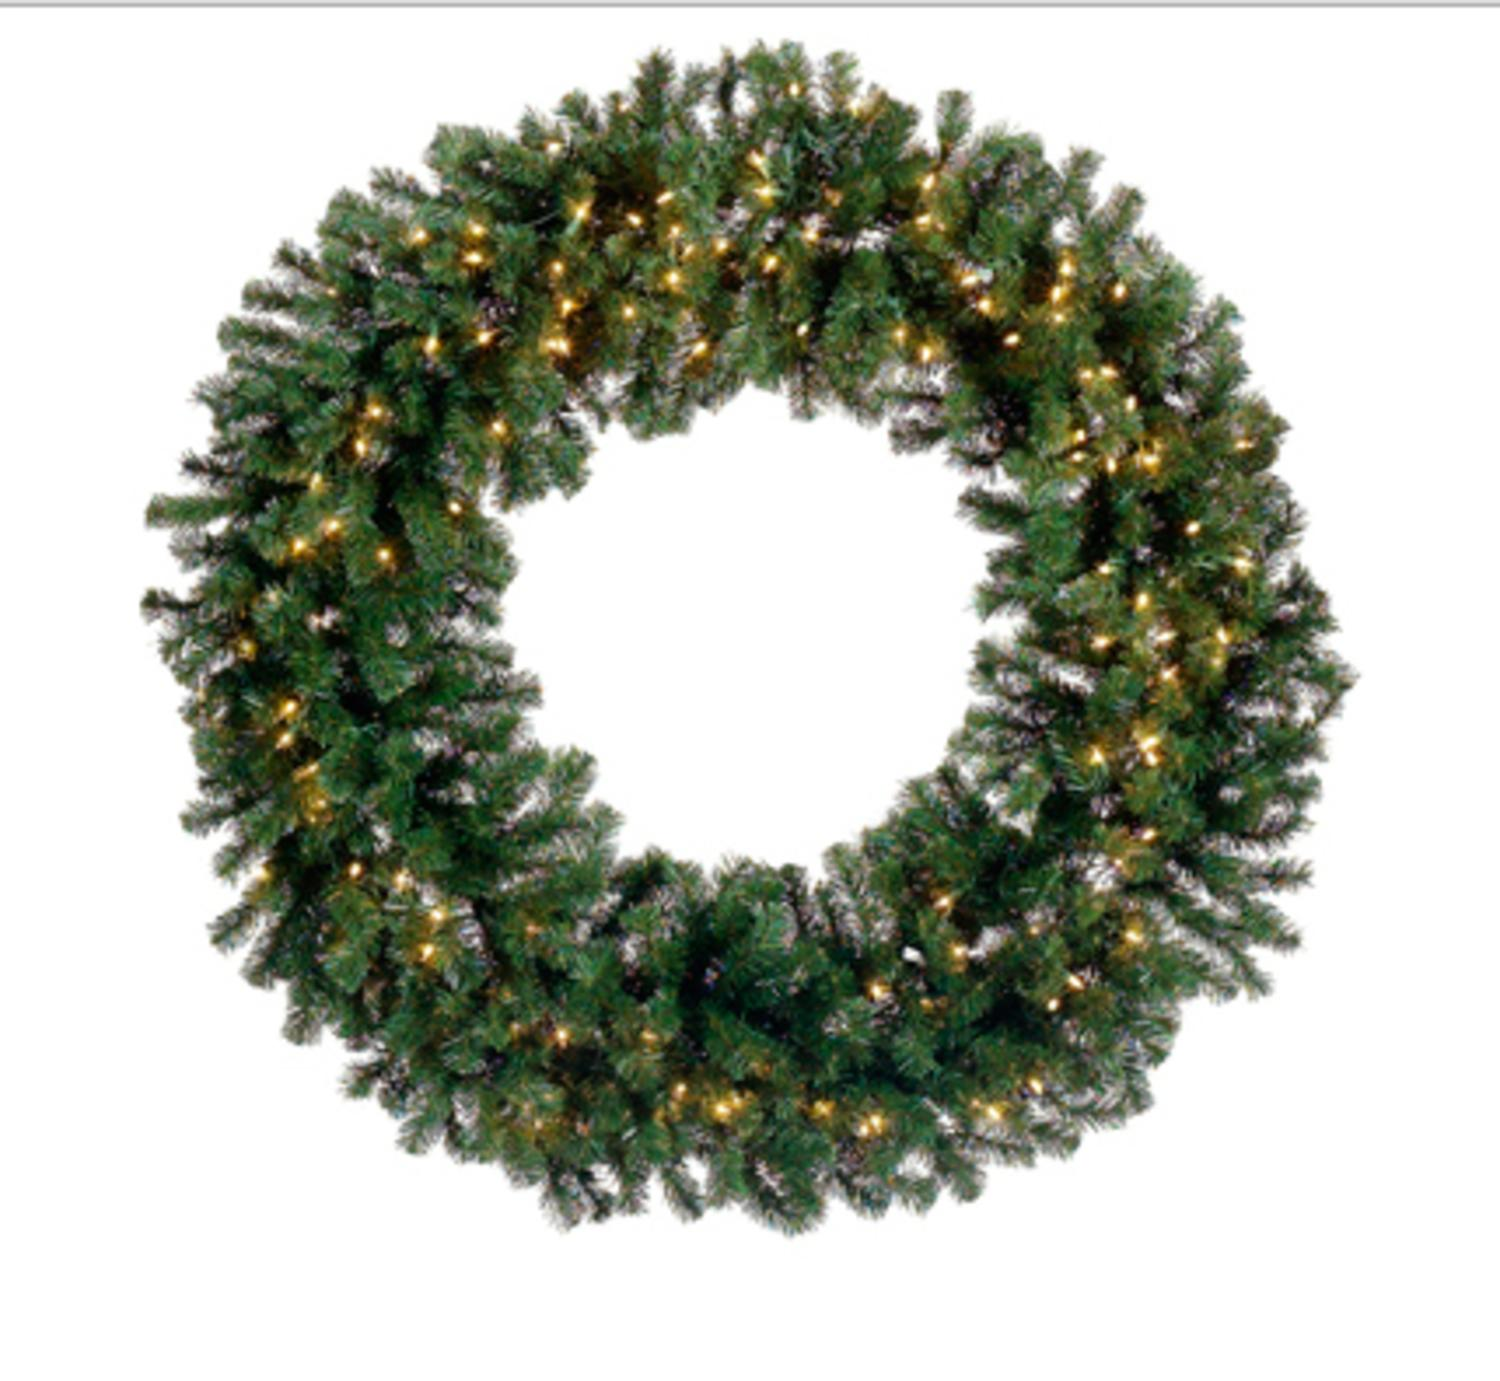 8' Pre-Lit Deluxe Windsor Pine Commercial Size Artificial Christmas Wreath - Clear Lights